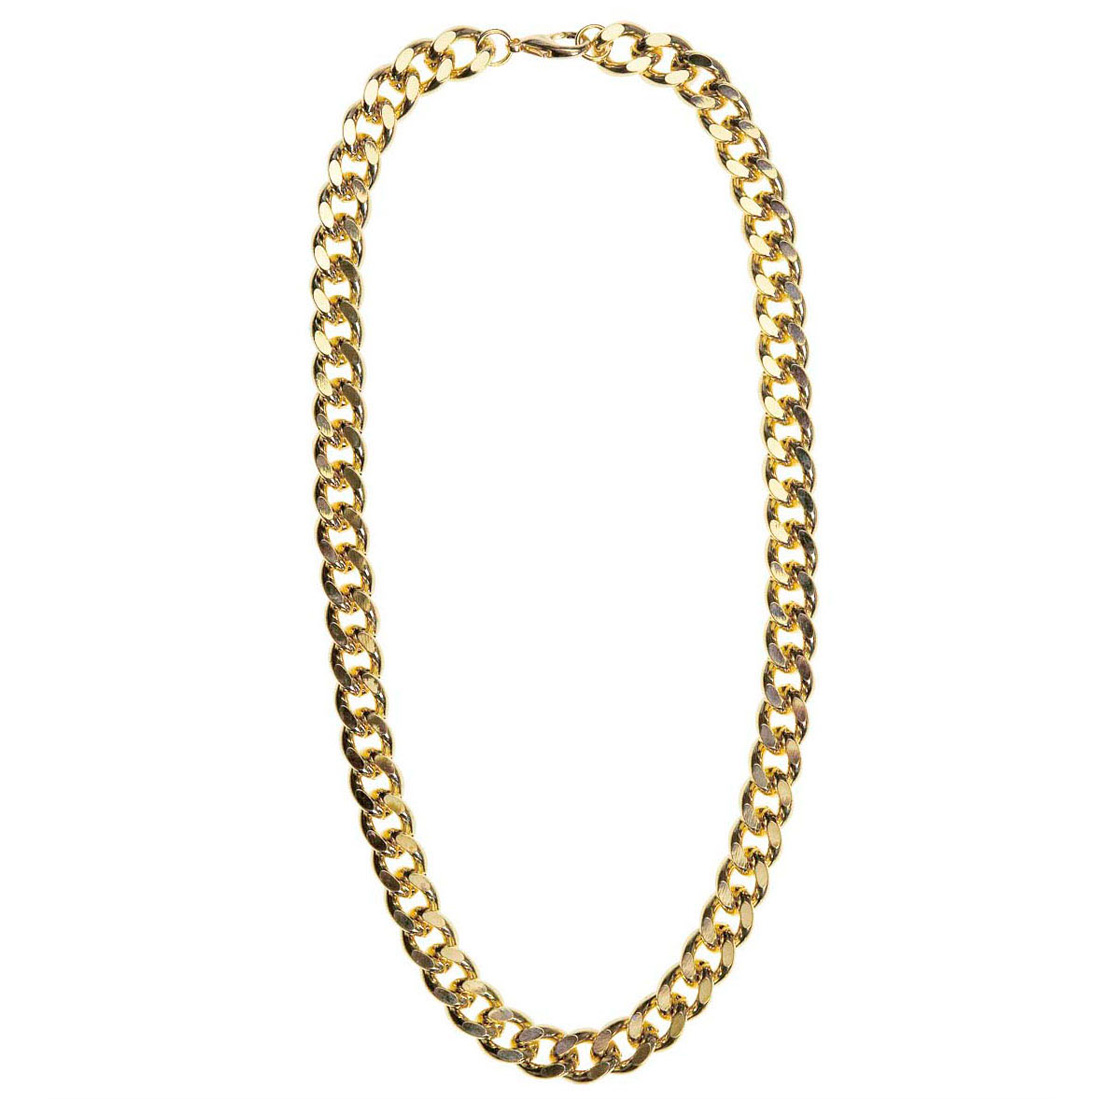 Goldkette gangster damen  Rapper Goldkette Hip Hop Gold Kette Gangster Halskette goldene ...